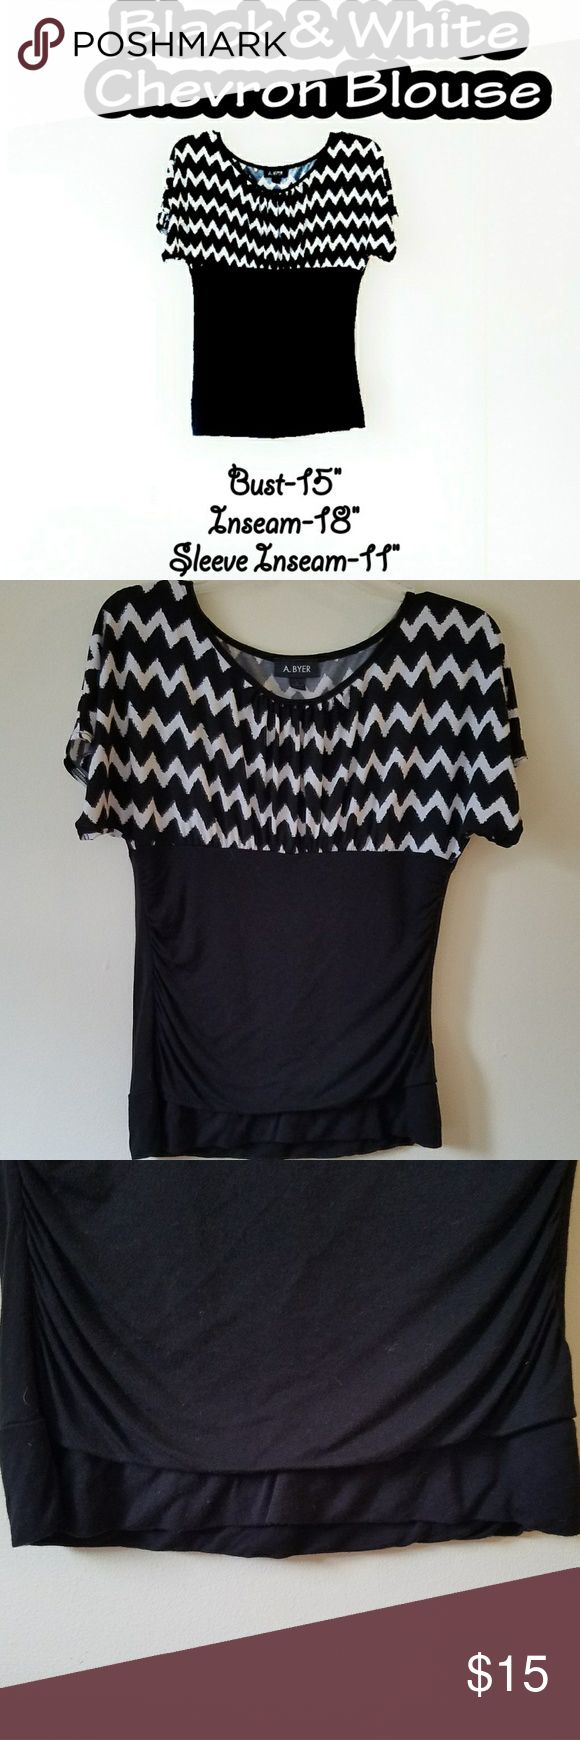 Chevron Blouse Black & white chevron blouse. Worn twice and is in perfect condition. It does stretch, a little bit.        ✔Negotiations welcome (reasonable)✔ 🚫No trades🚫 🛒 💵Bundles ALWAYS get a private discount💵 ⛤I am a 5 star rated buyer⛤ 🚛I ship same day, next day at the lastest🚛 🚿All clothes get washed before packaging & shipment🚿 Tops Blouses